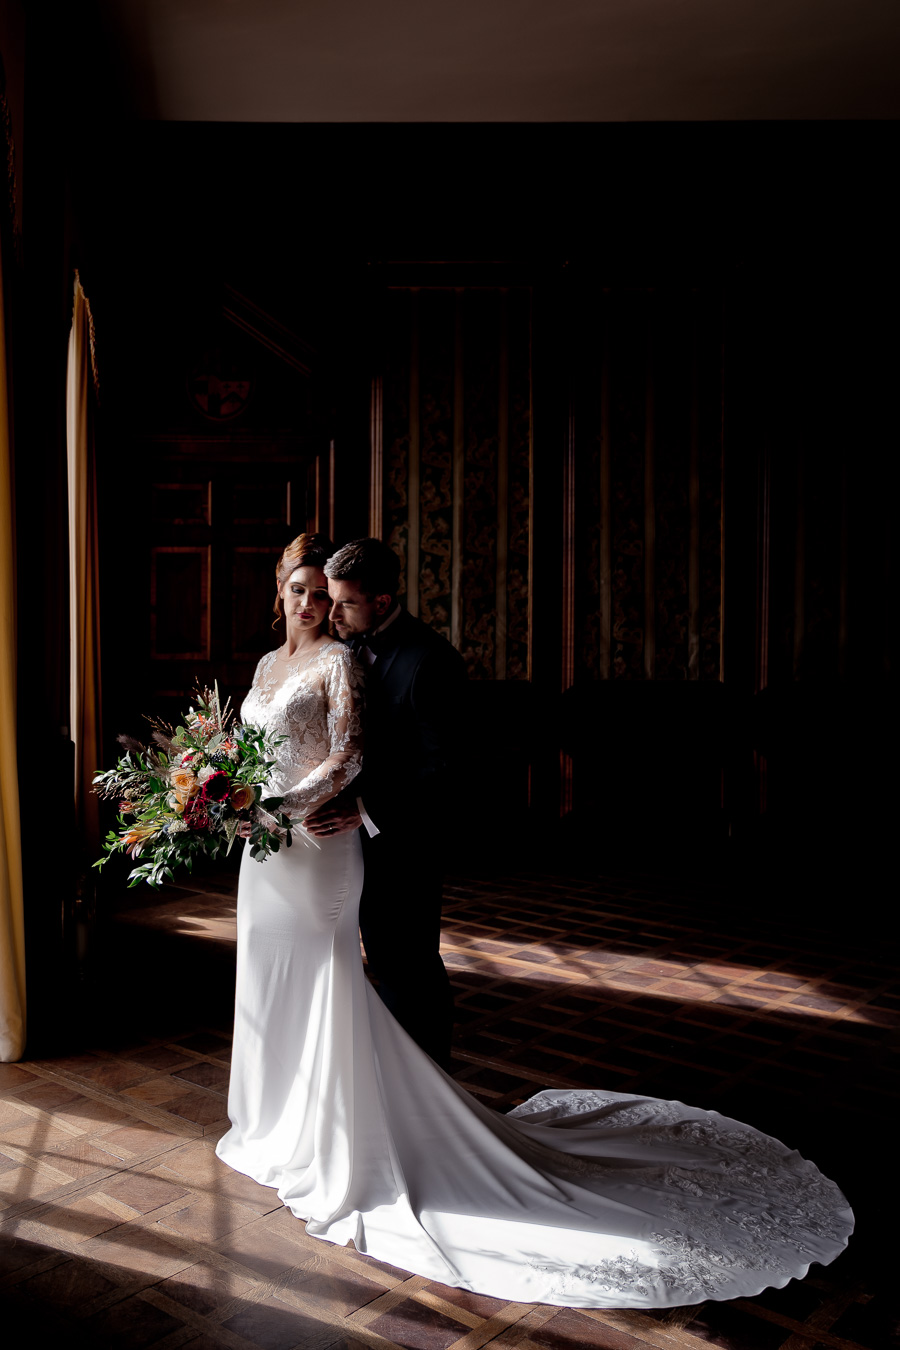 Elegance and glamour, Vanity Fair style. A styled wedding photoshoot from Davenport House. Image Laura May Photography (23)